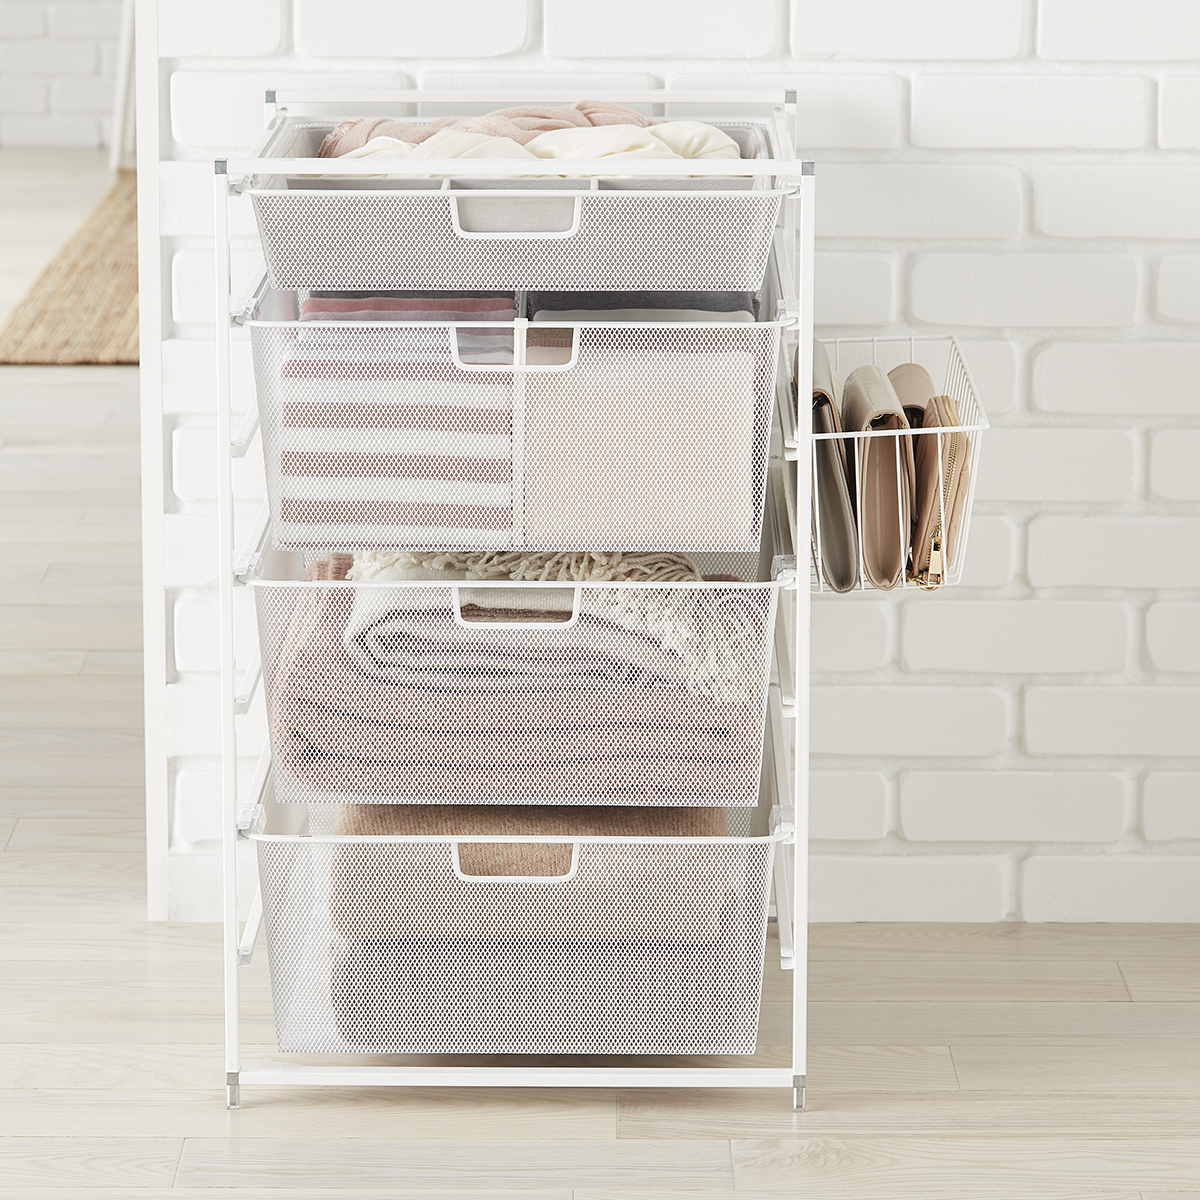 Elfa White Drawers Solution & Organizers